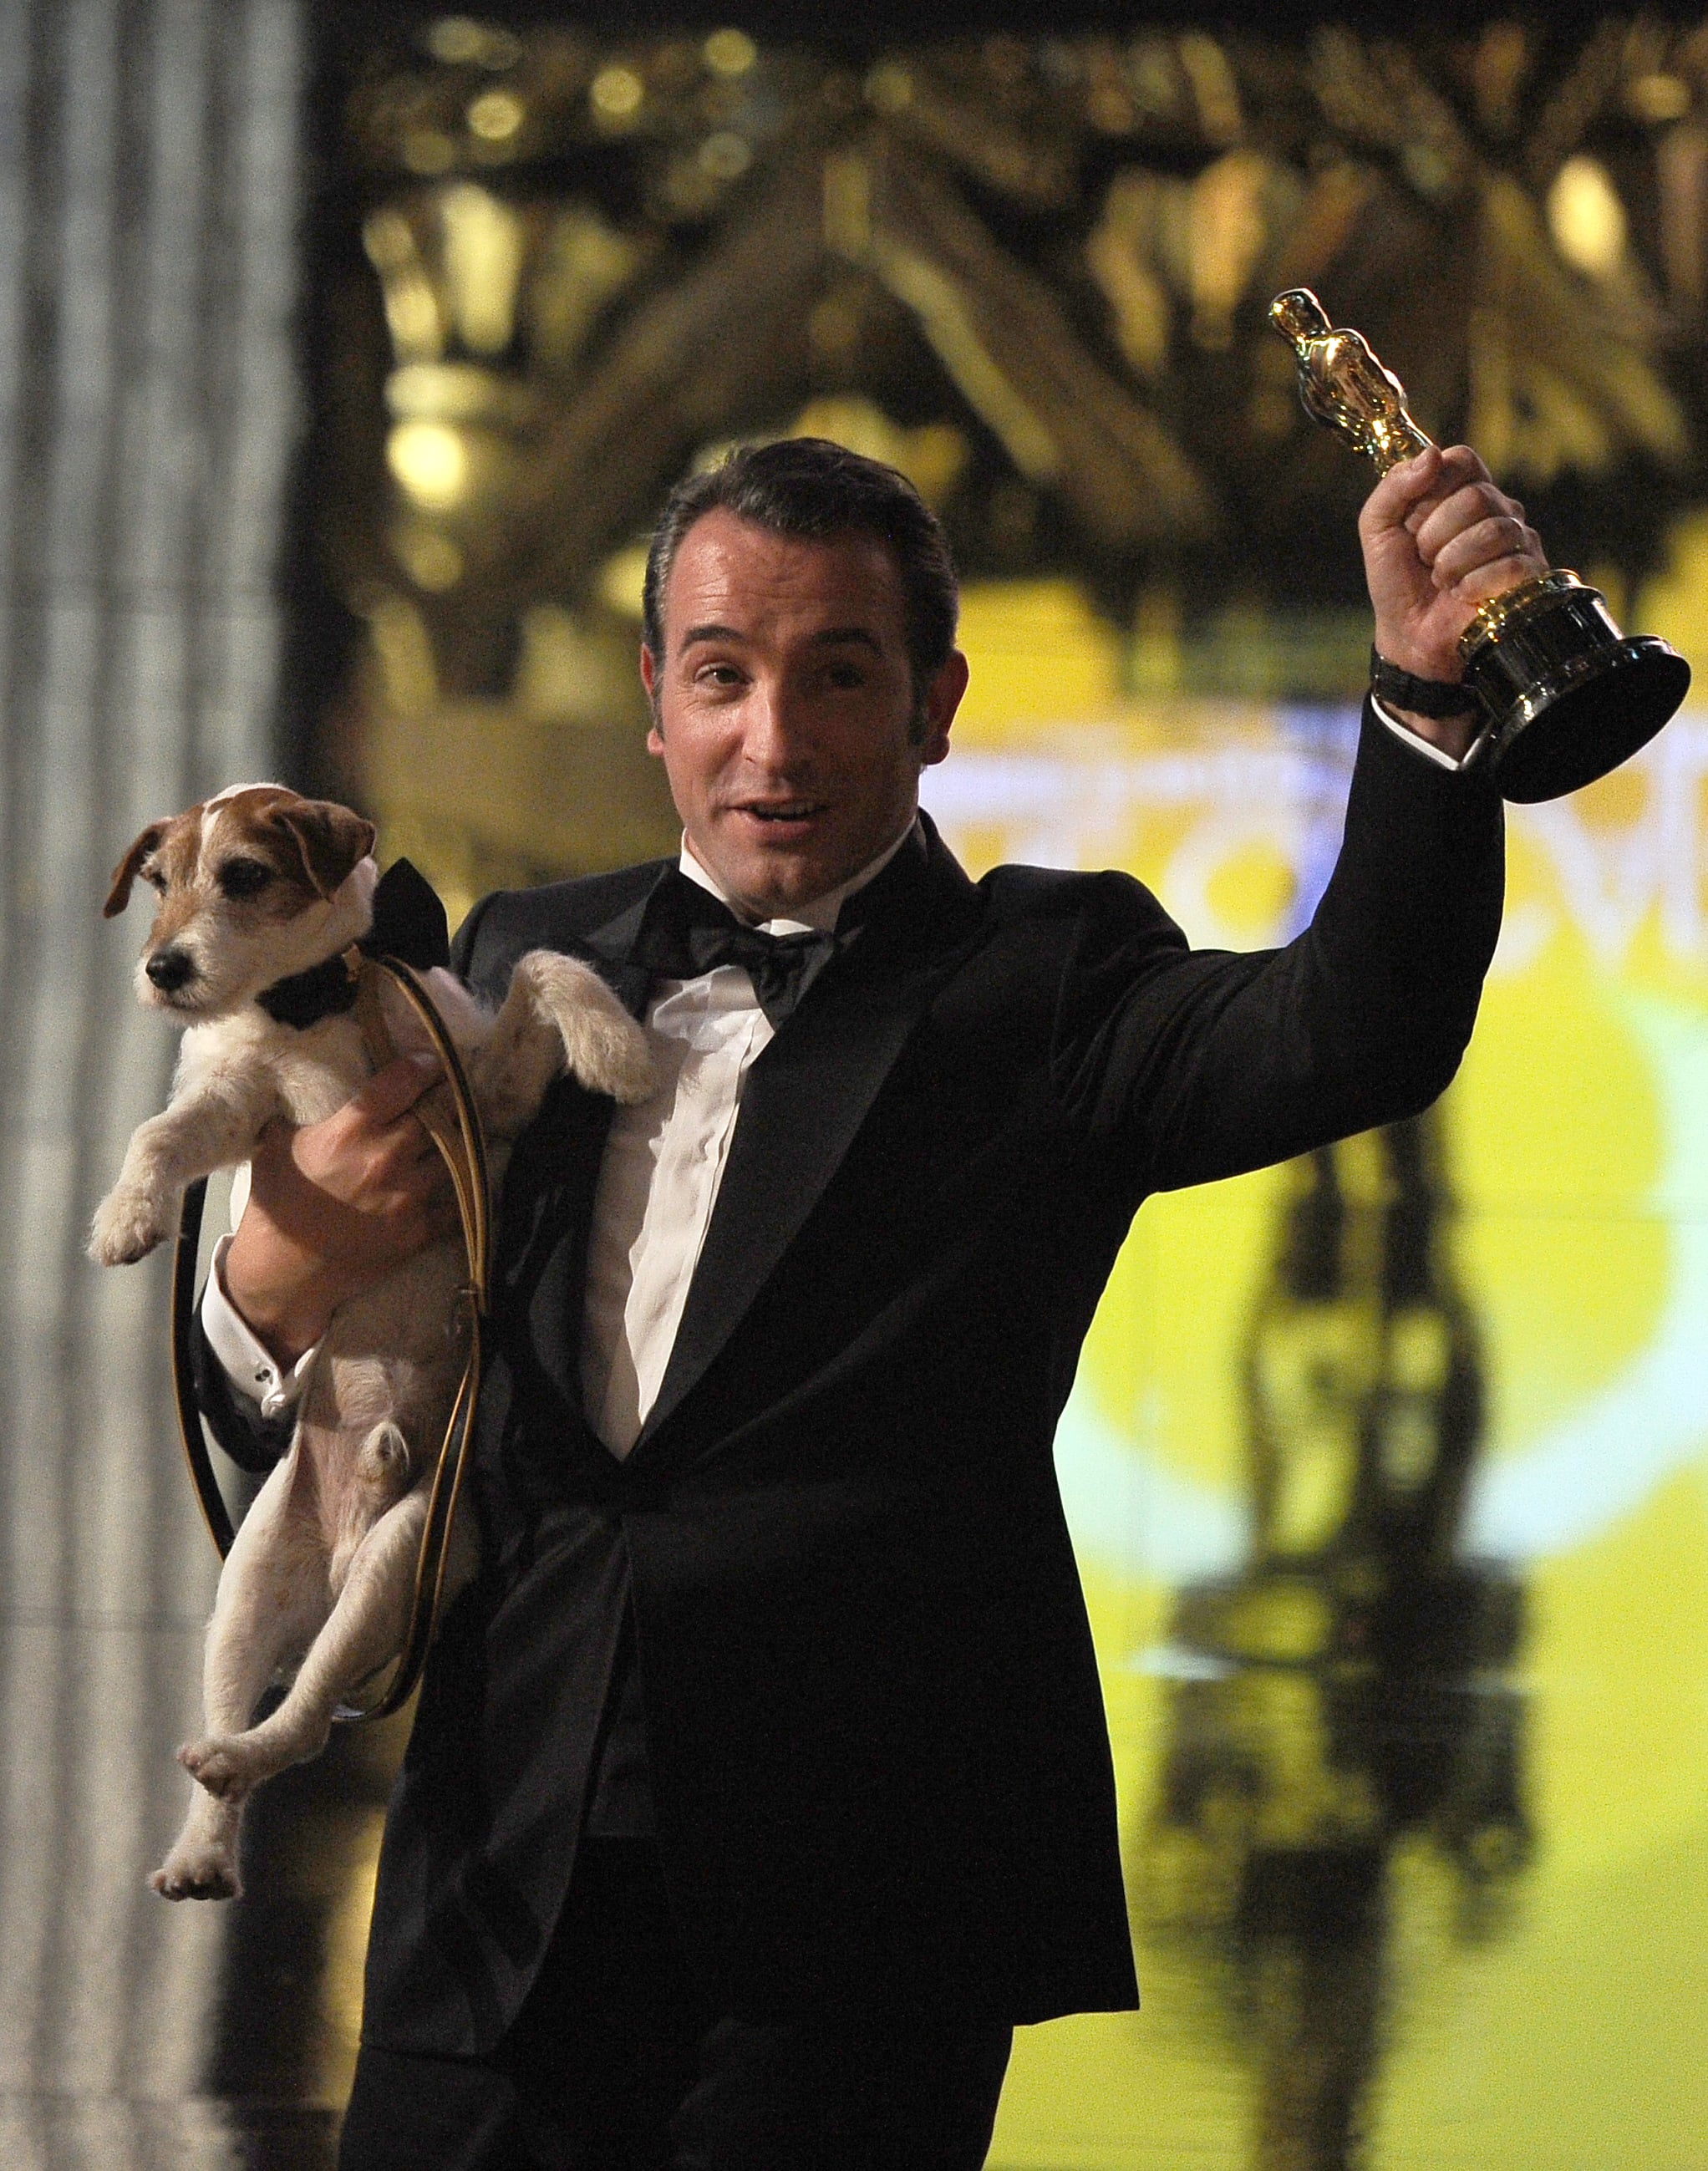 With best actor-winning costar Jean Dujardin. Source: AFP